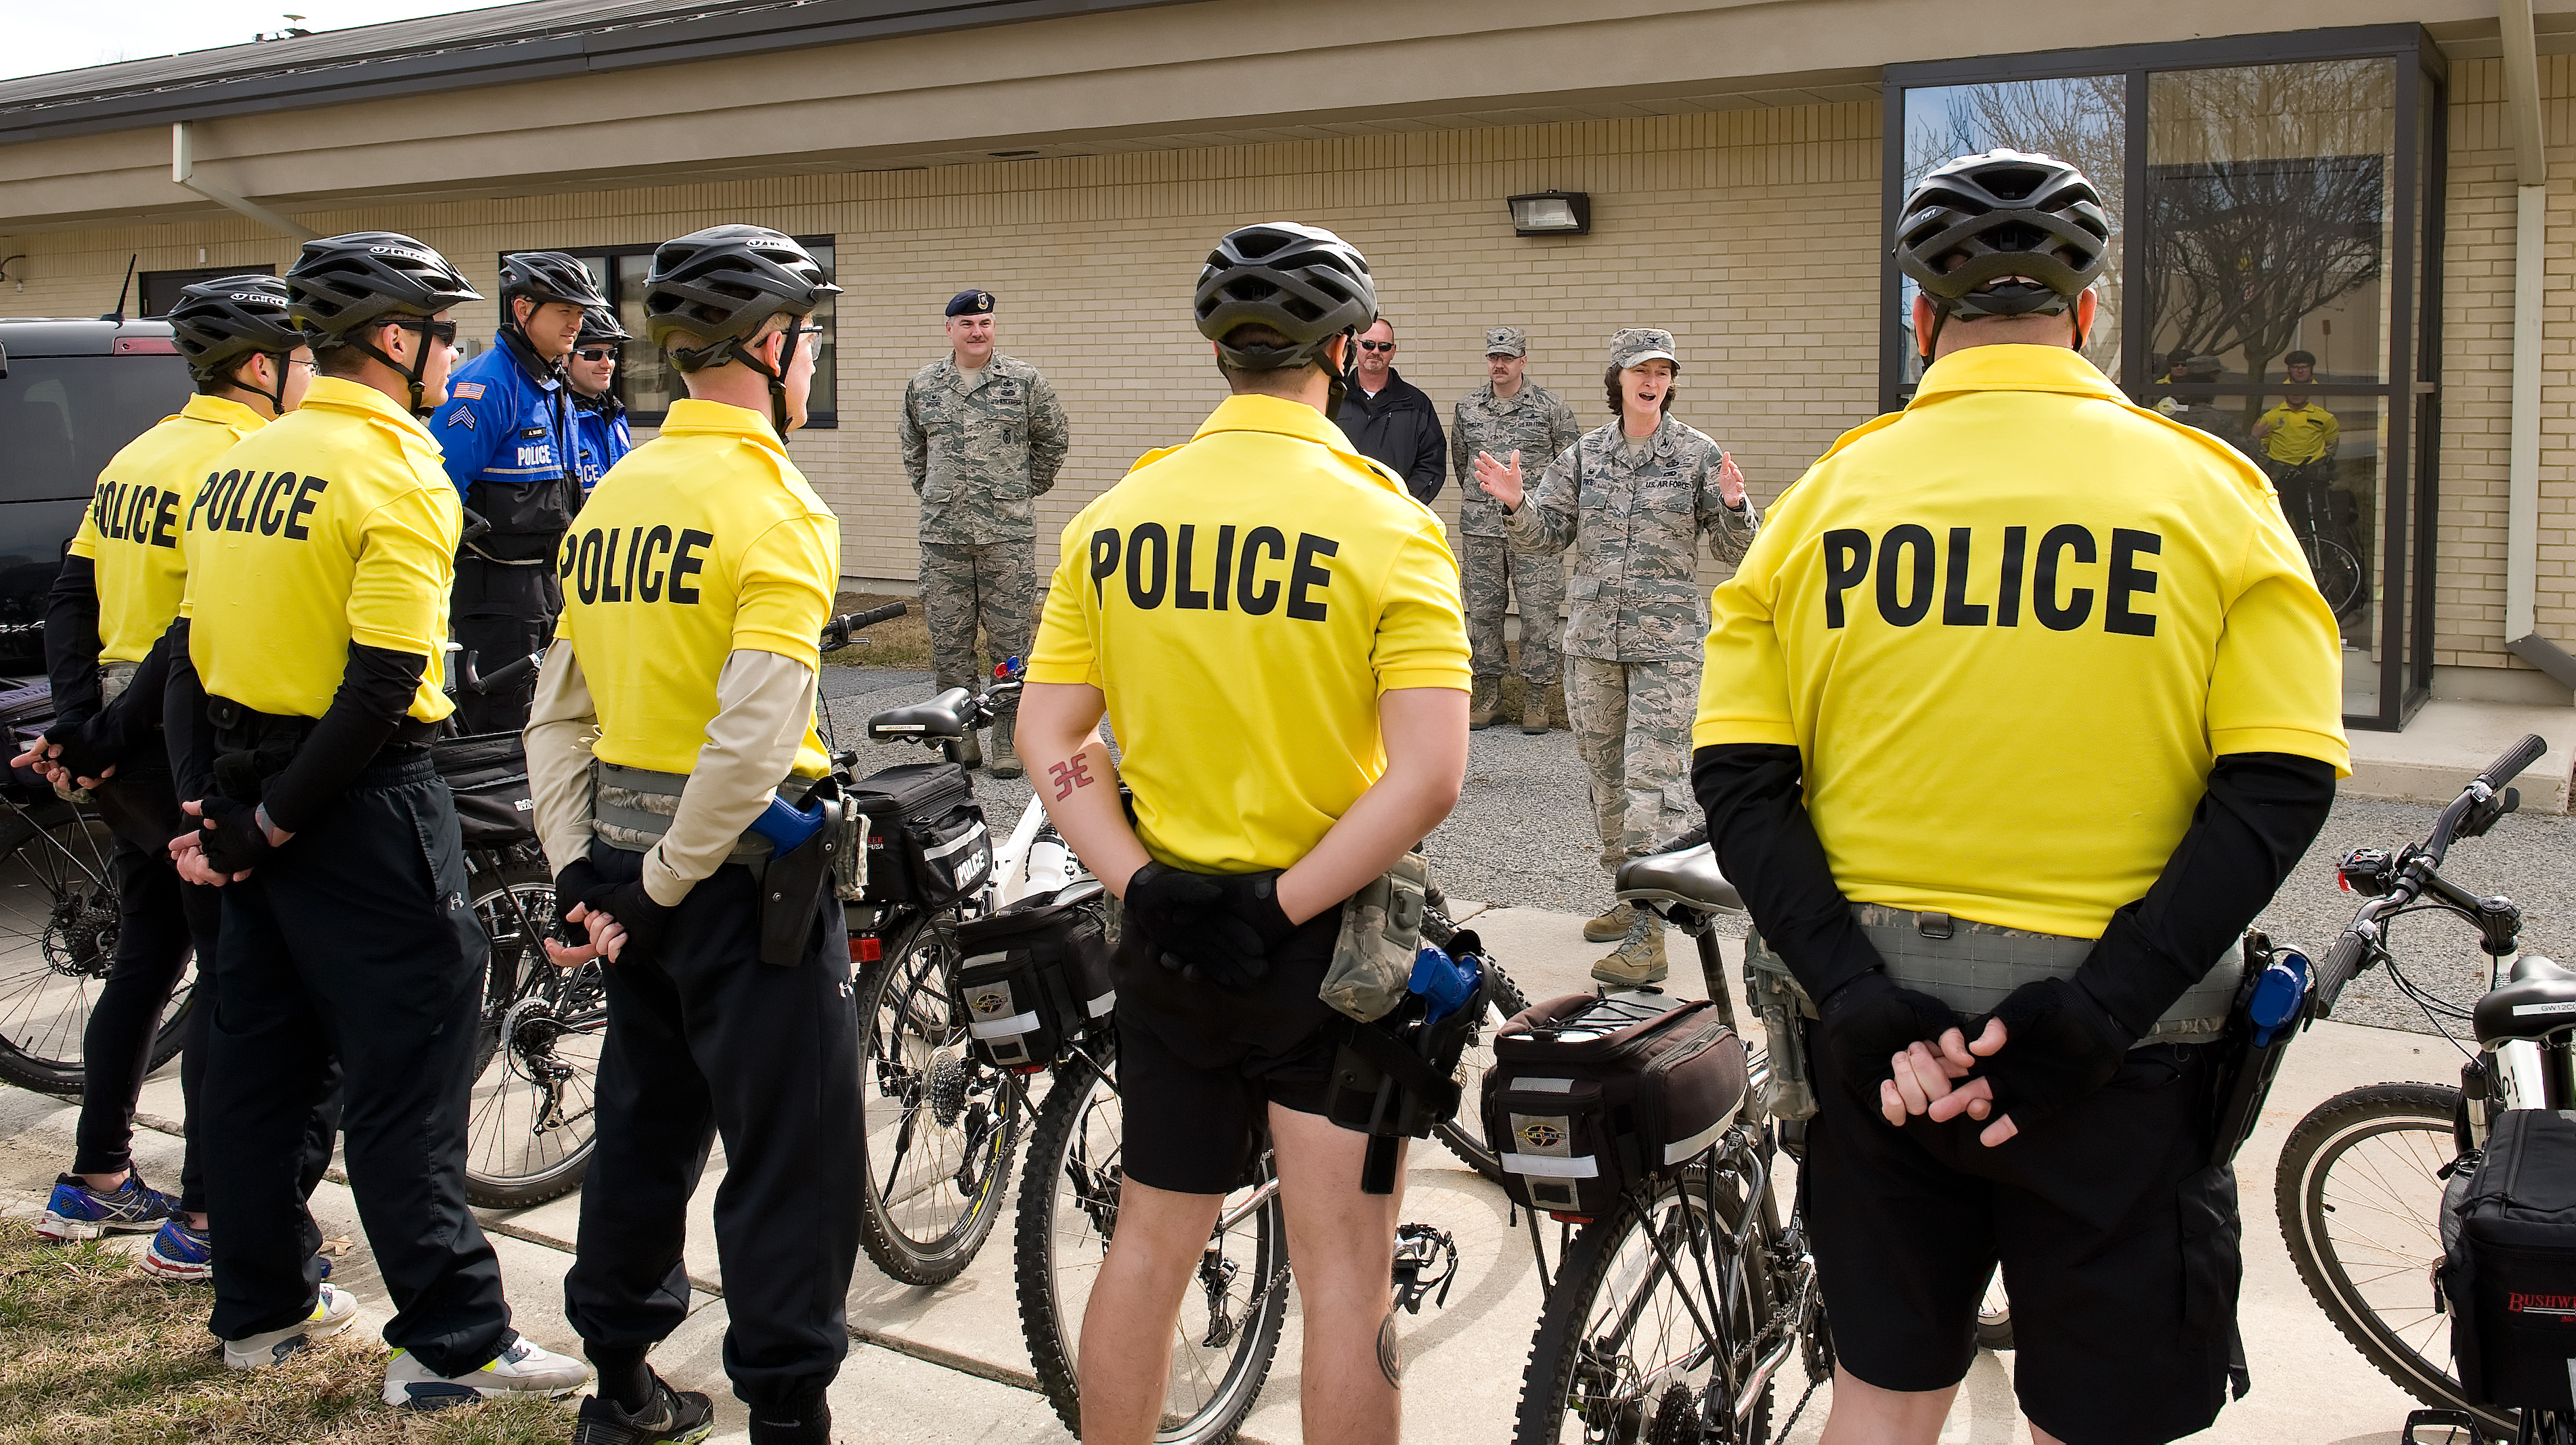 436th SFS pedals to strengthen community relations > Dover